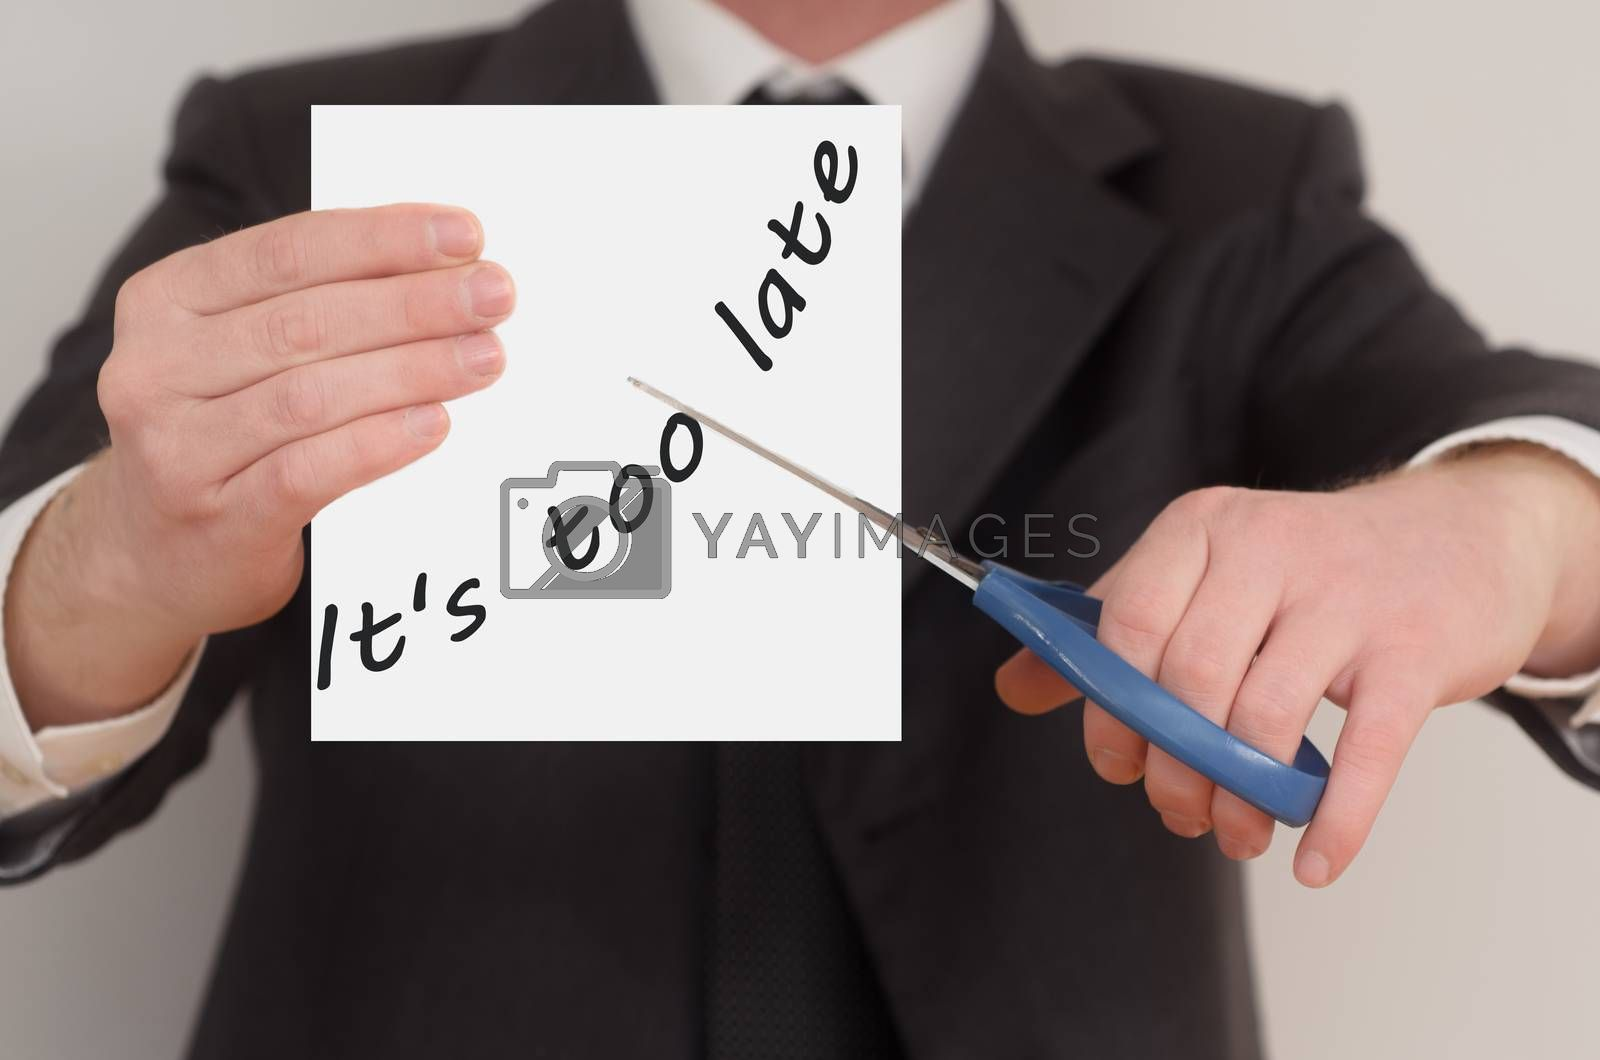 It's too late, man in suit cutting text on paper with scissors